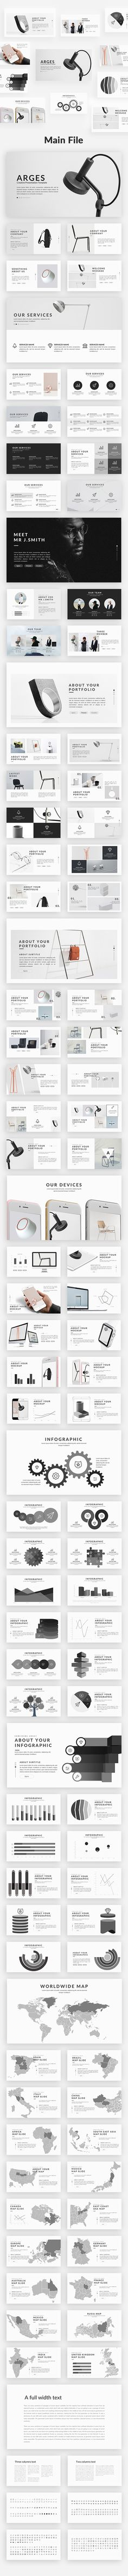 Arges Minimal Powerpoint Template #infographic #flow chart • Download ➝ https://graphicriver.net/item/arges-minimal-powerpoint-template/19481911?ref=pxcr